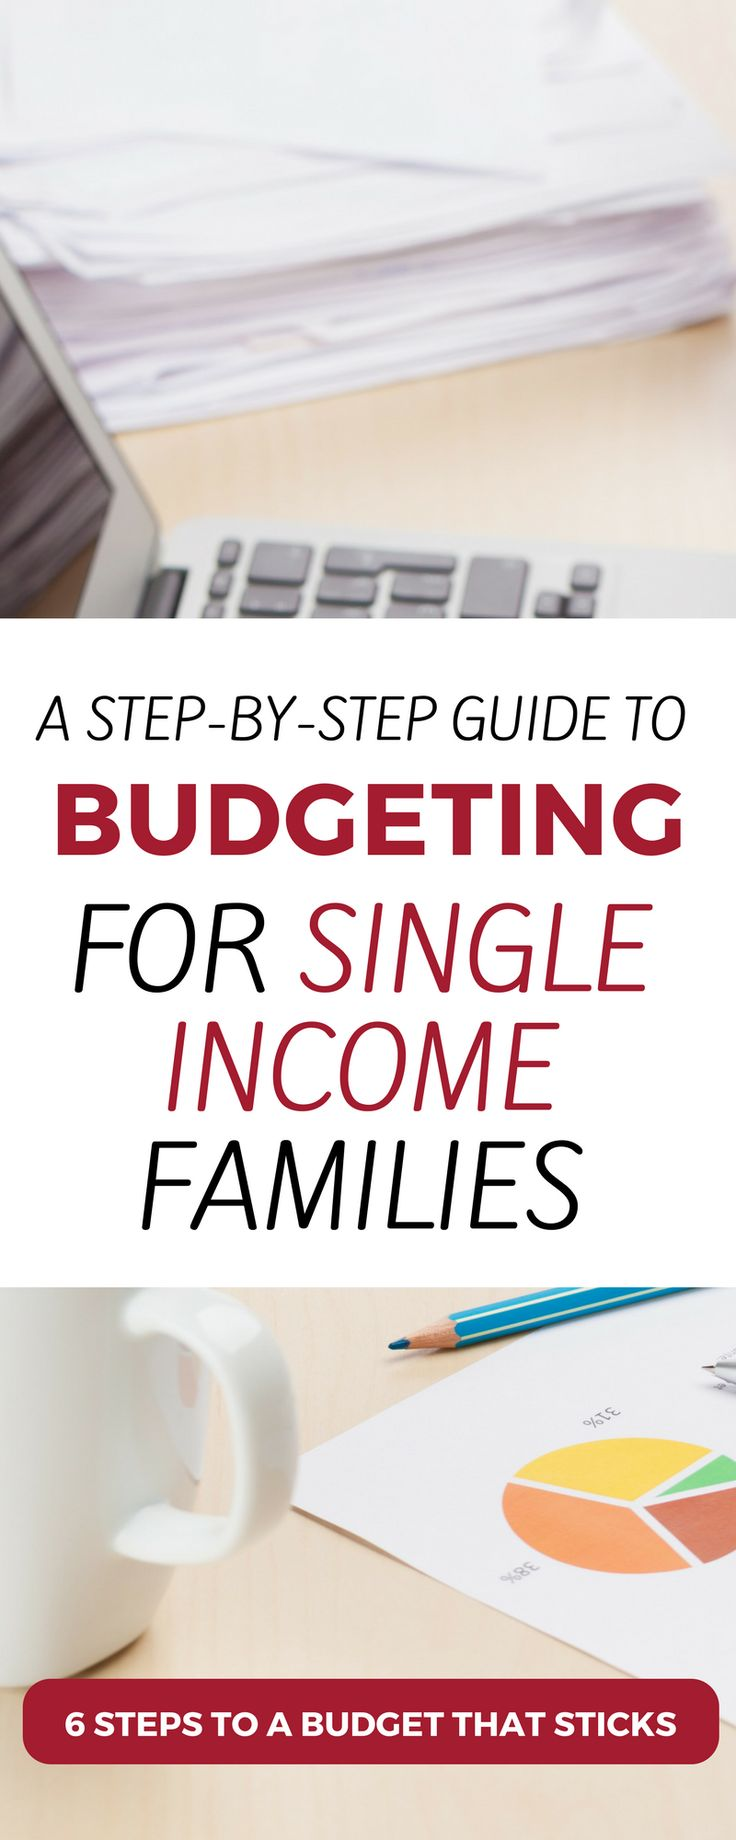 Discover the secrets to budgeting on one income. This step-by-step budgeting process for single income families can help your family live a meaningful and frugal life.  via @https://www.pinterest.com/thewaystowealth/